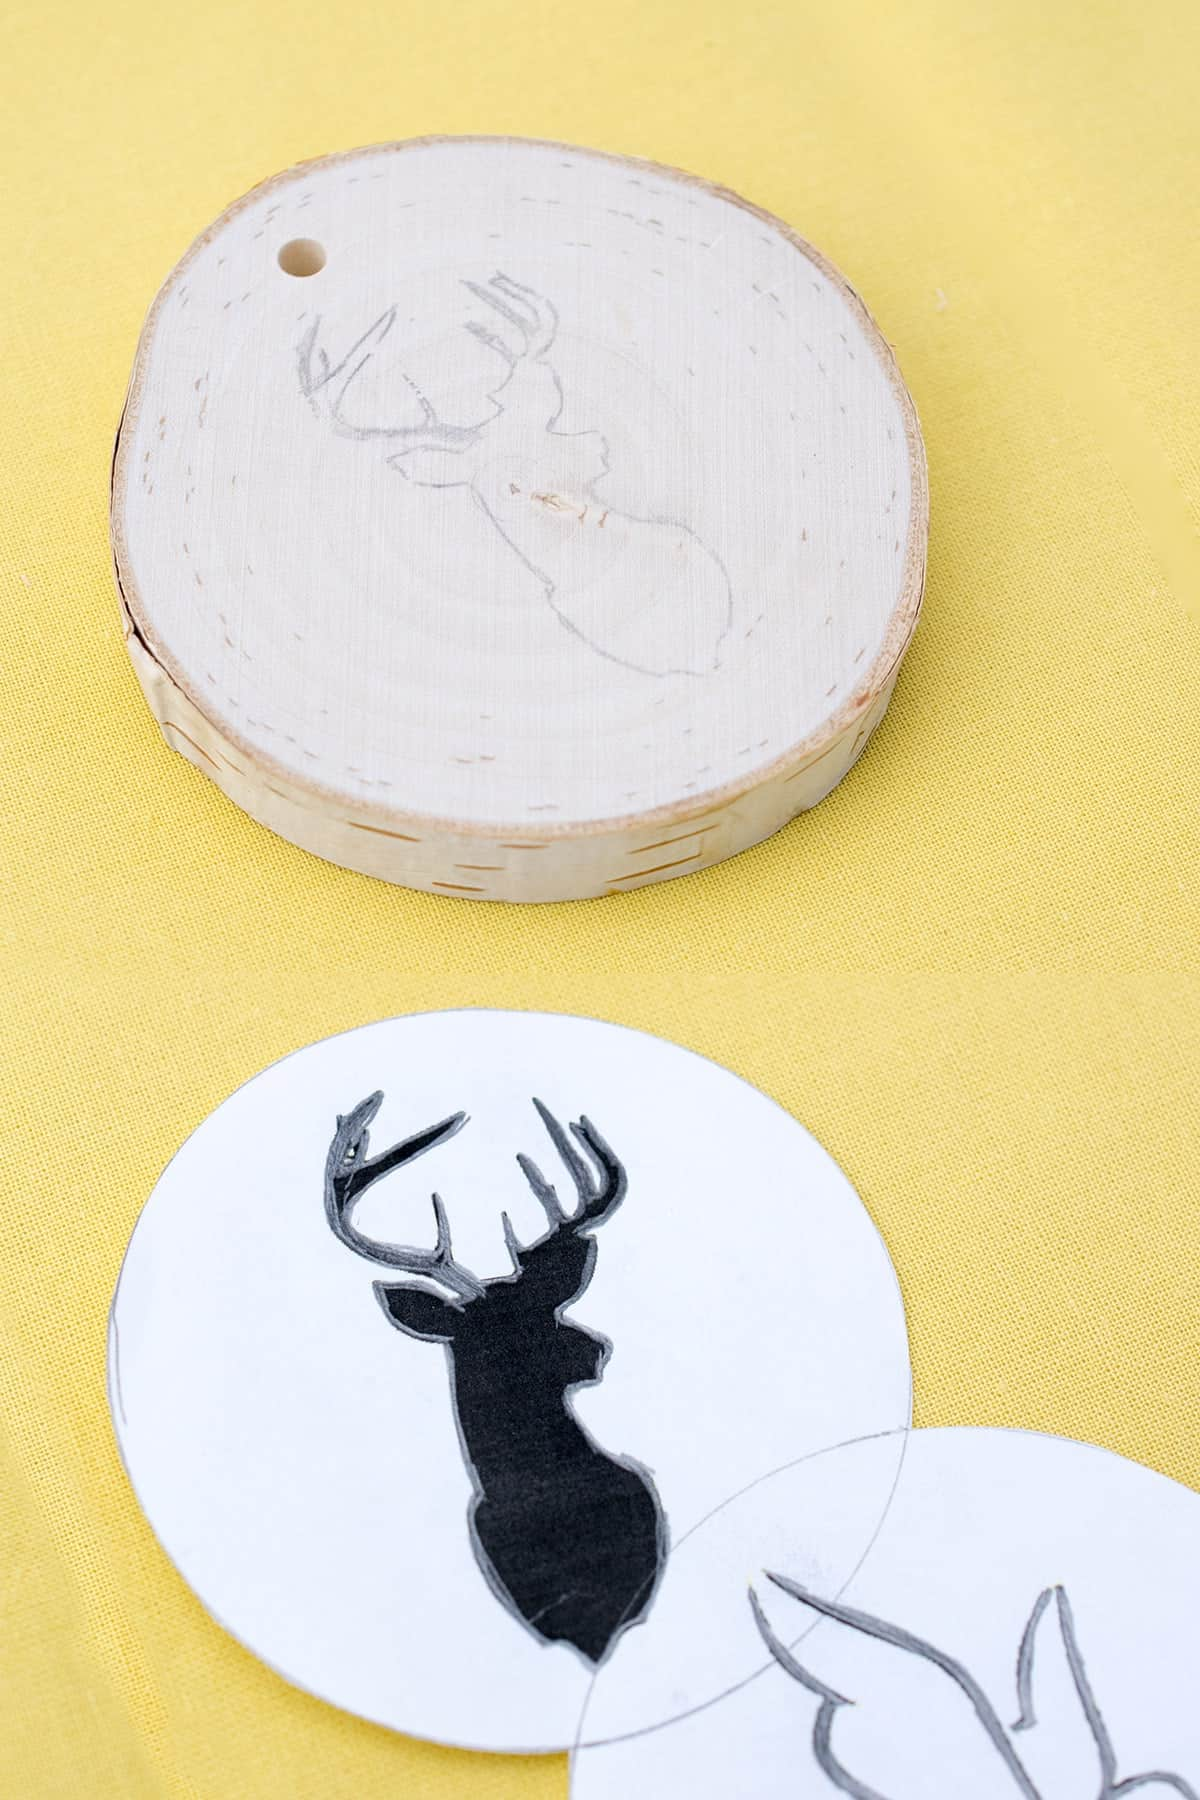 Round wood slice ornament with deer head image next to round paper with same image on yellow surface.